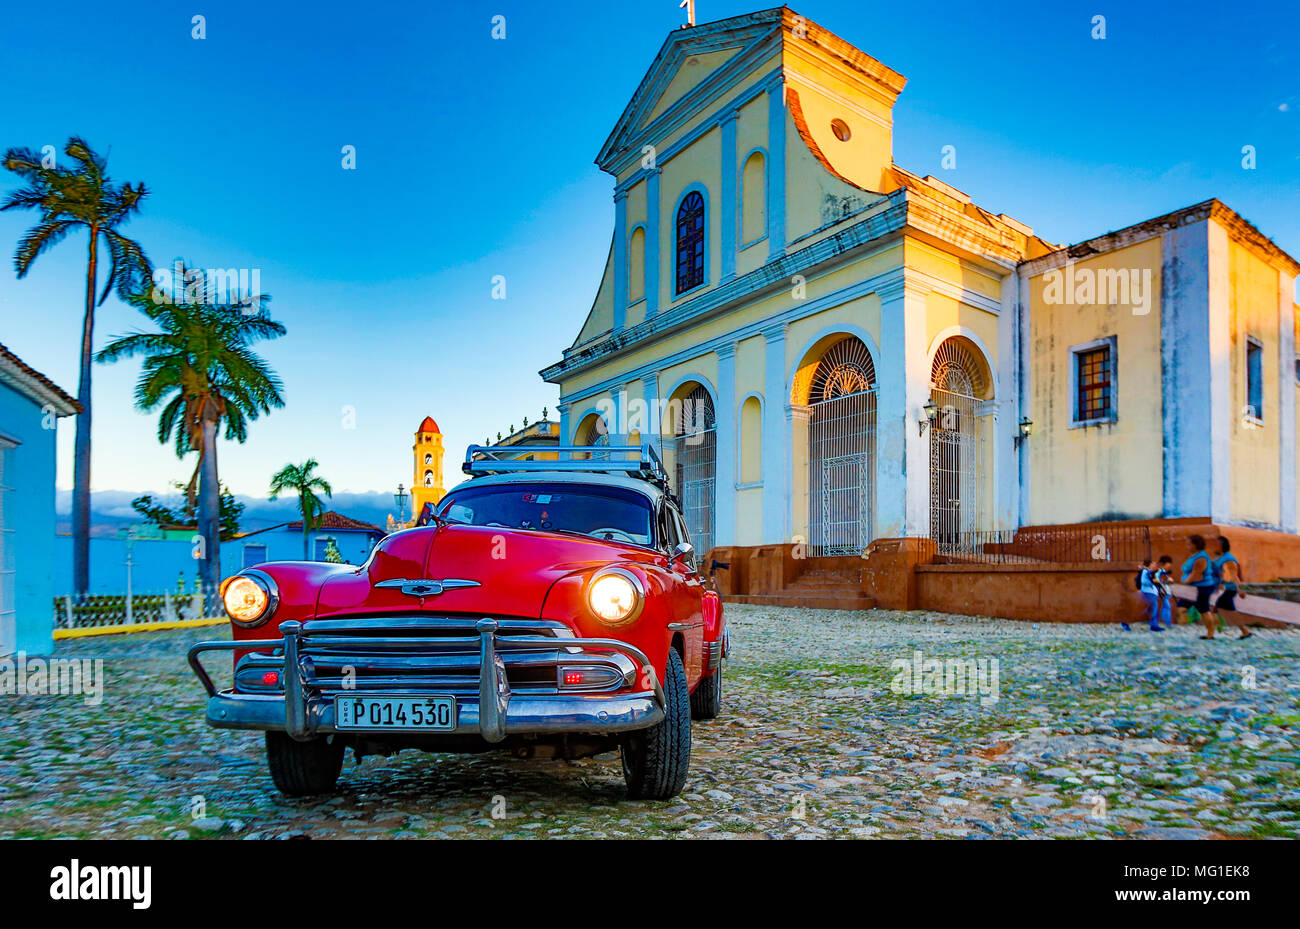 Trinidad, Cuba, Nov 28, 2017 - Red Classic 1950's Chevrolet is parked in front of a church - Stock Image